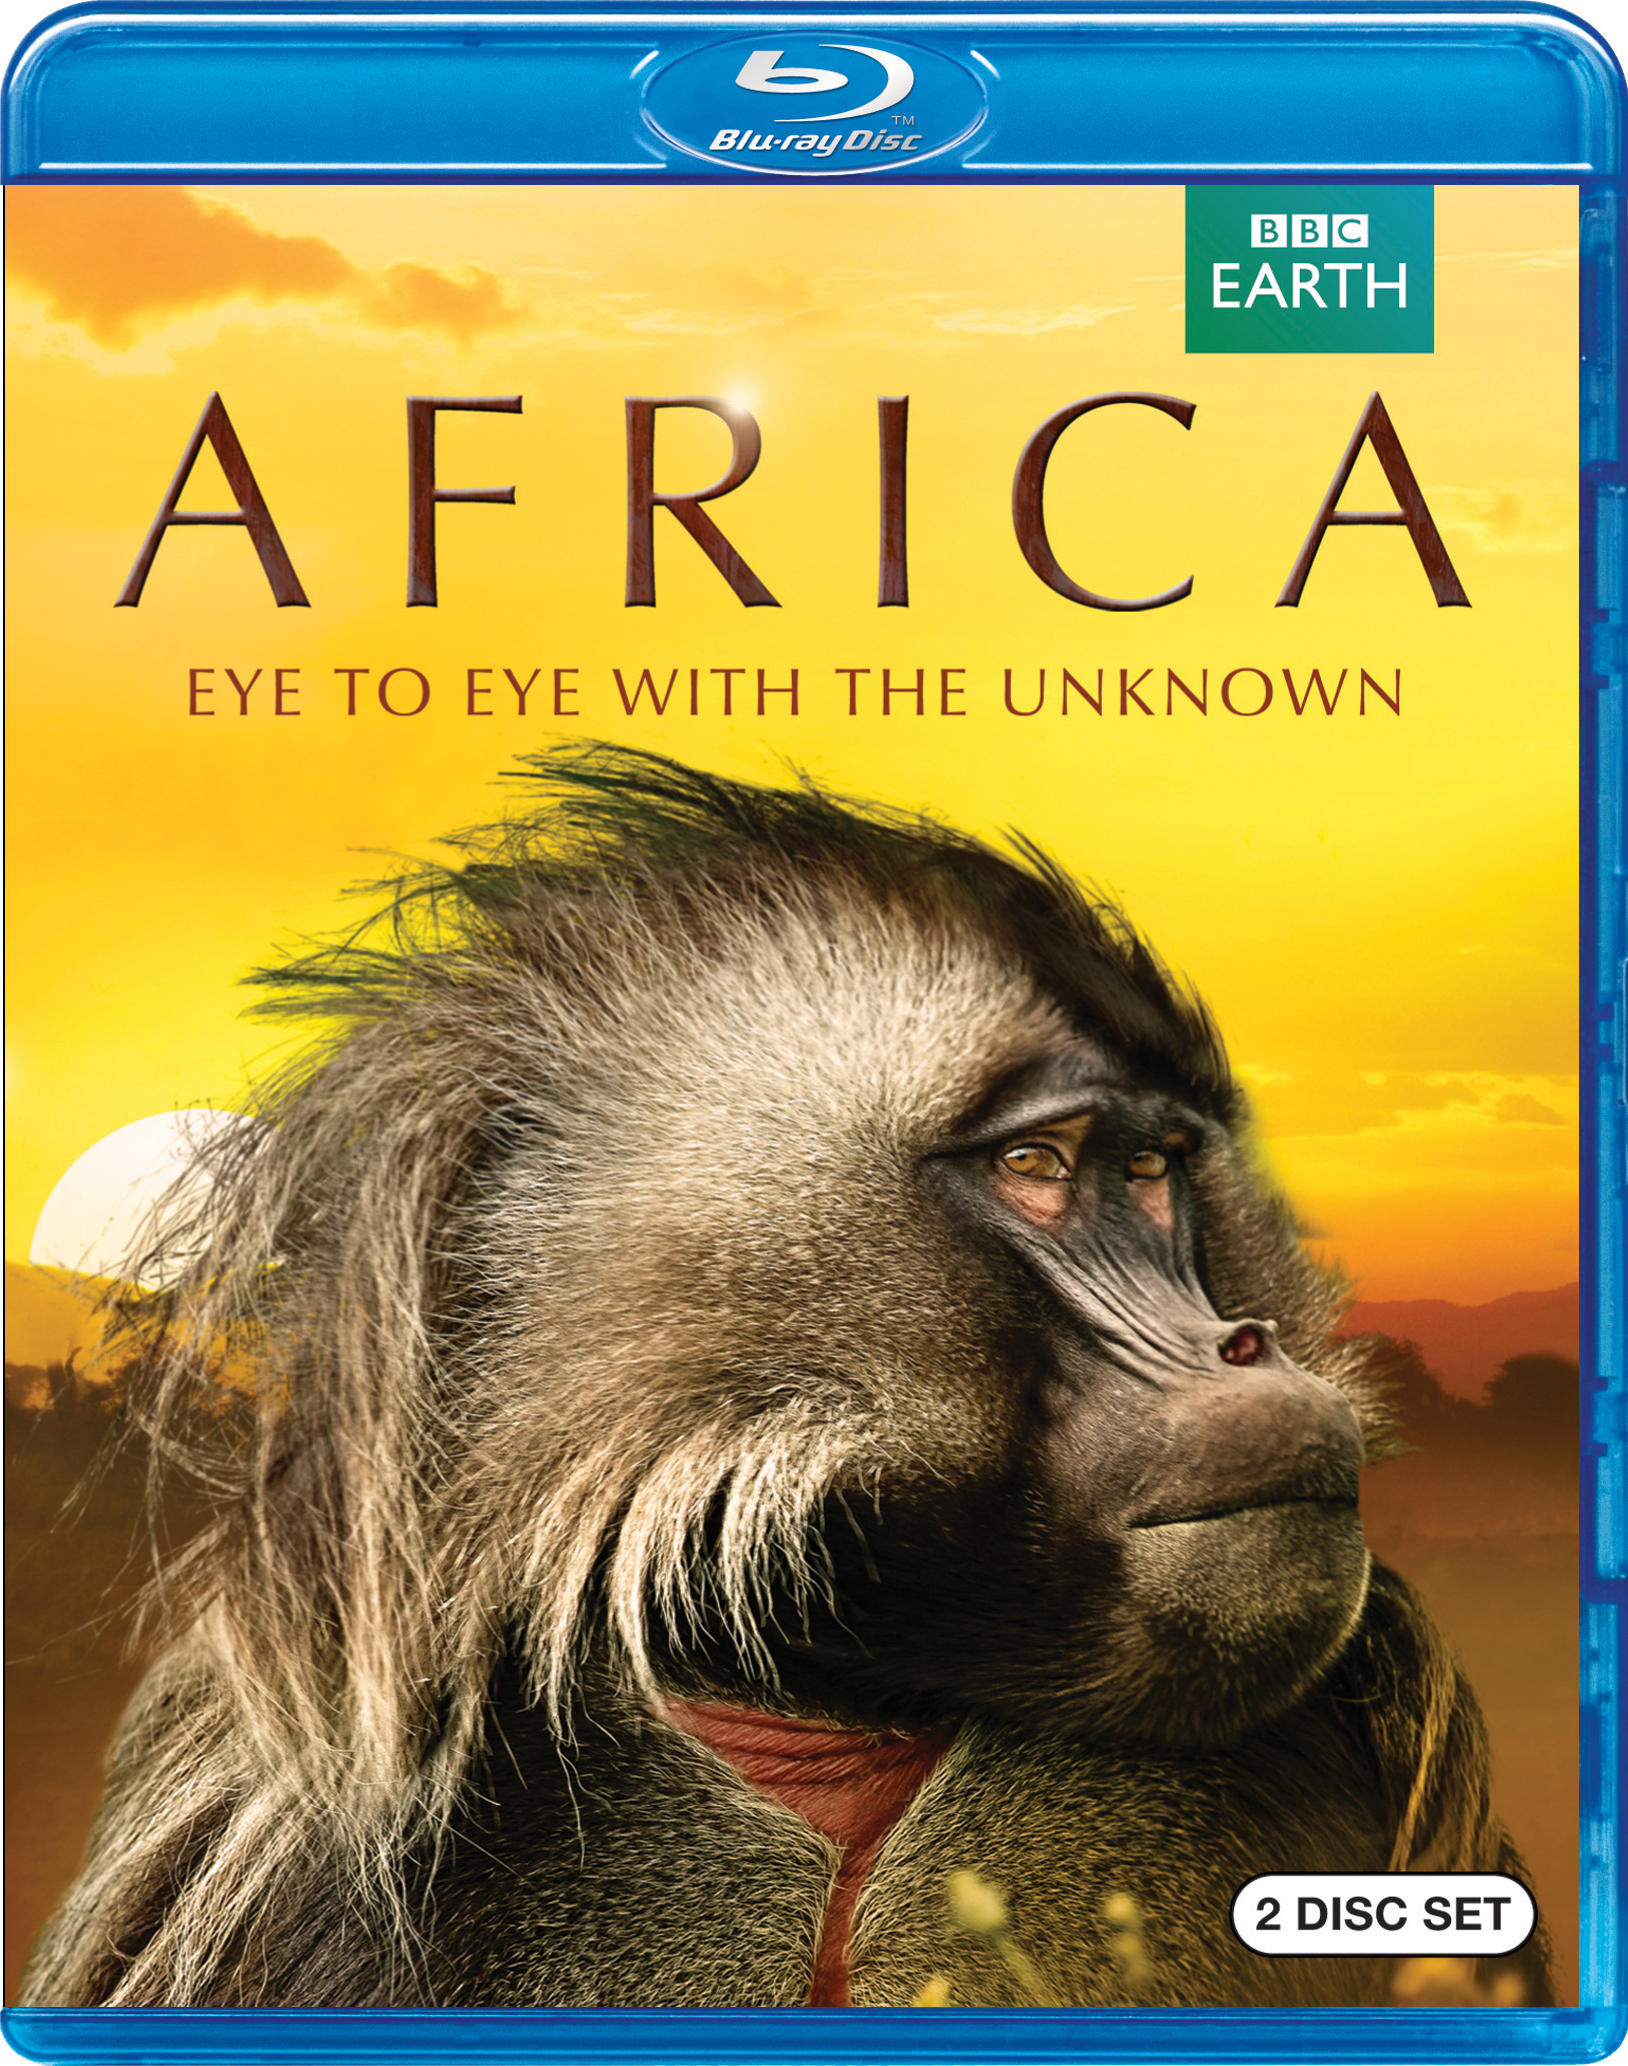 Amazing Africa (2013) Pictures & Backgrounds